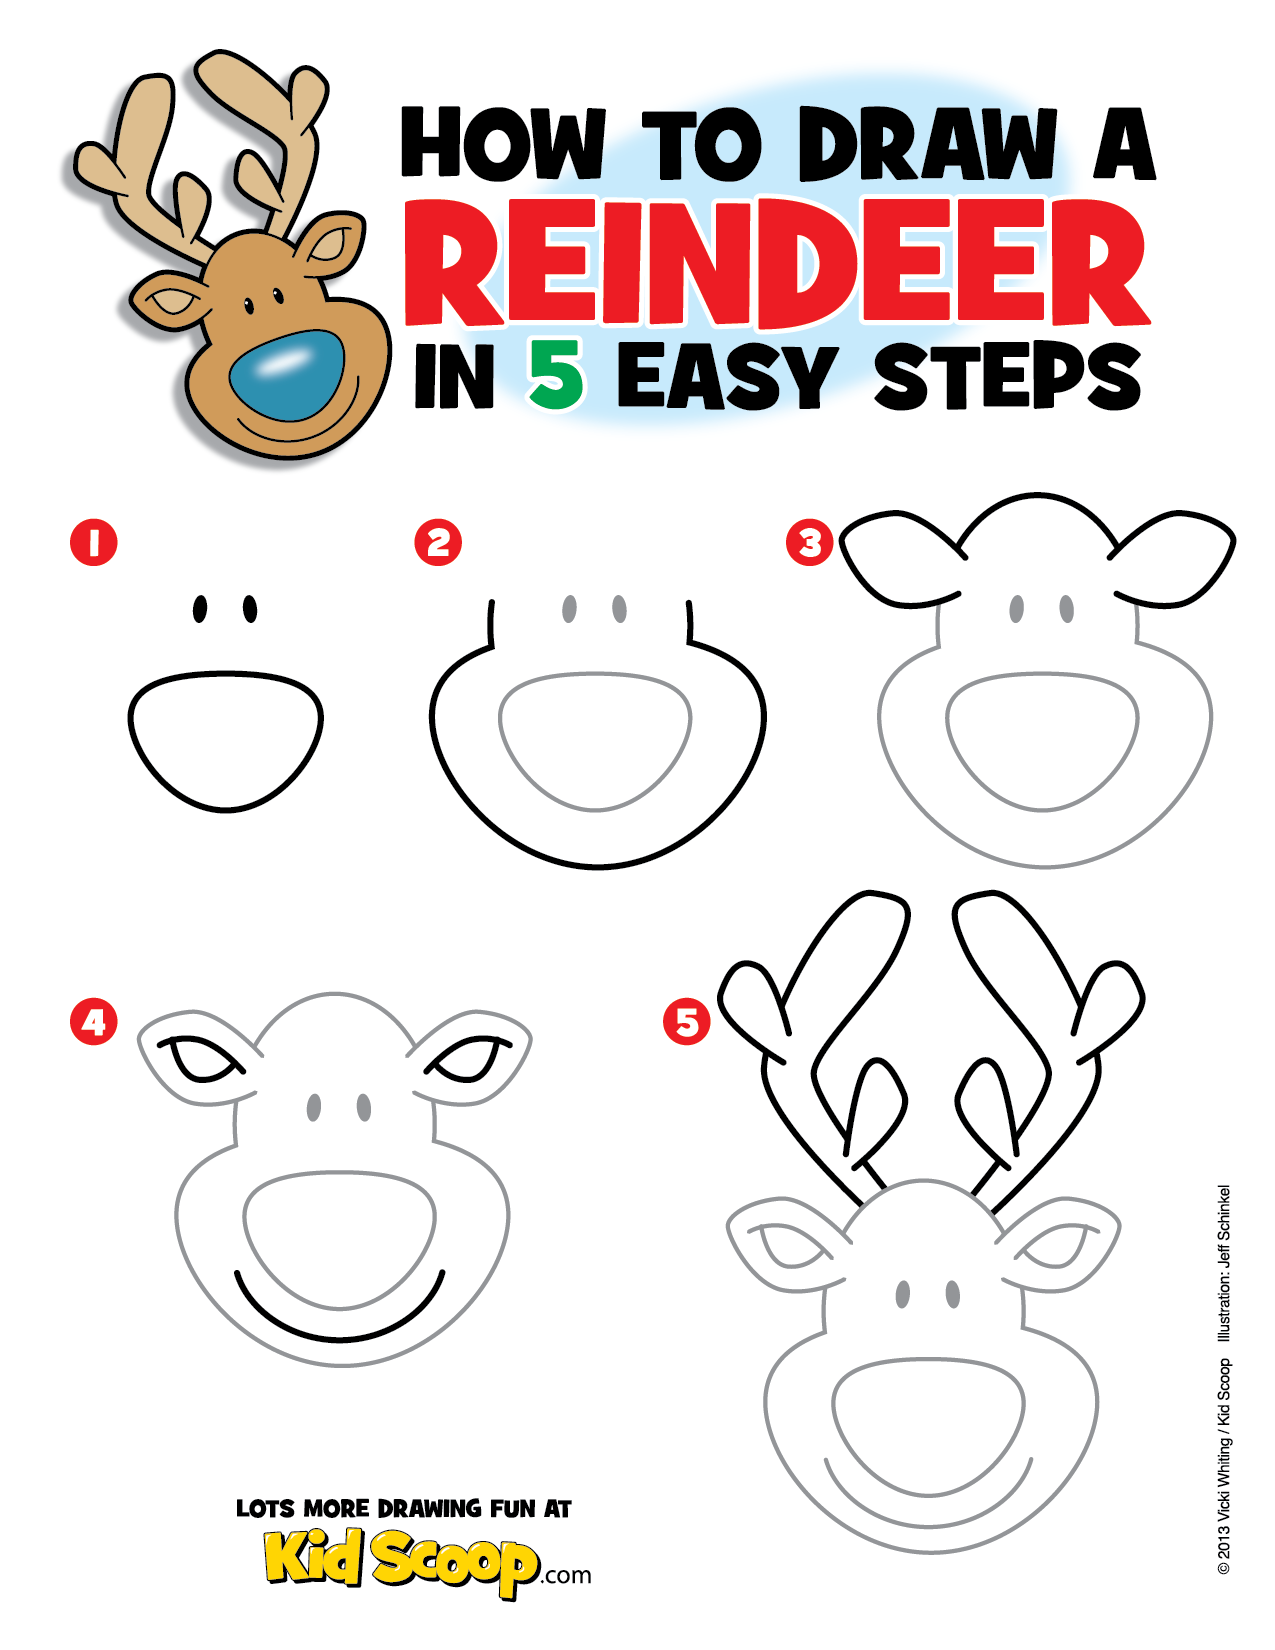 Use this step by step guide with your child or students